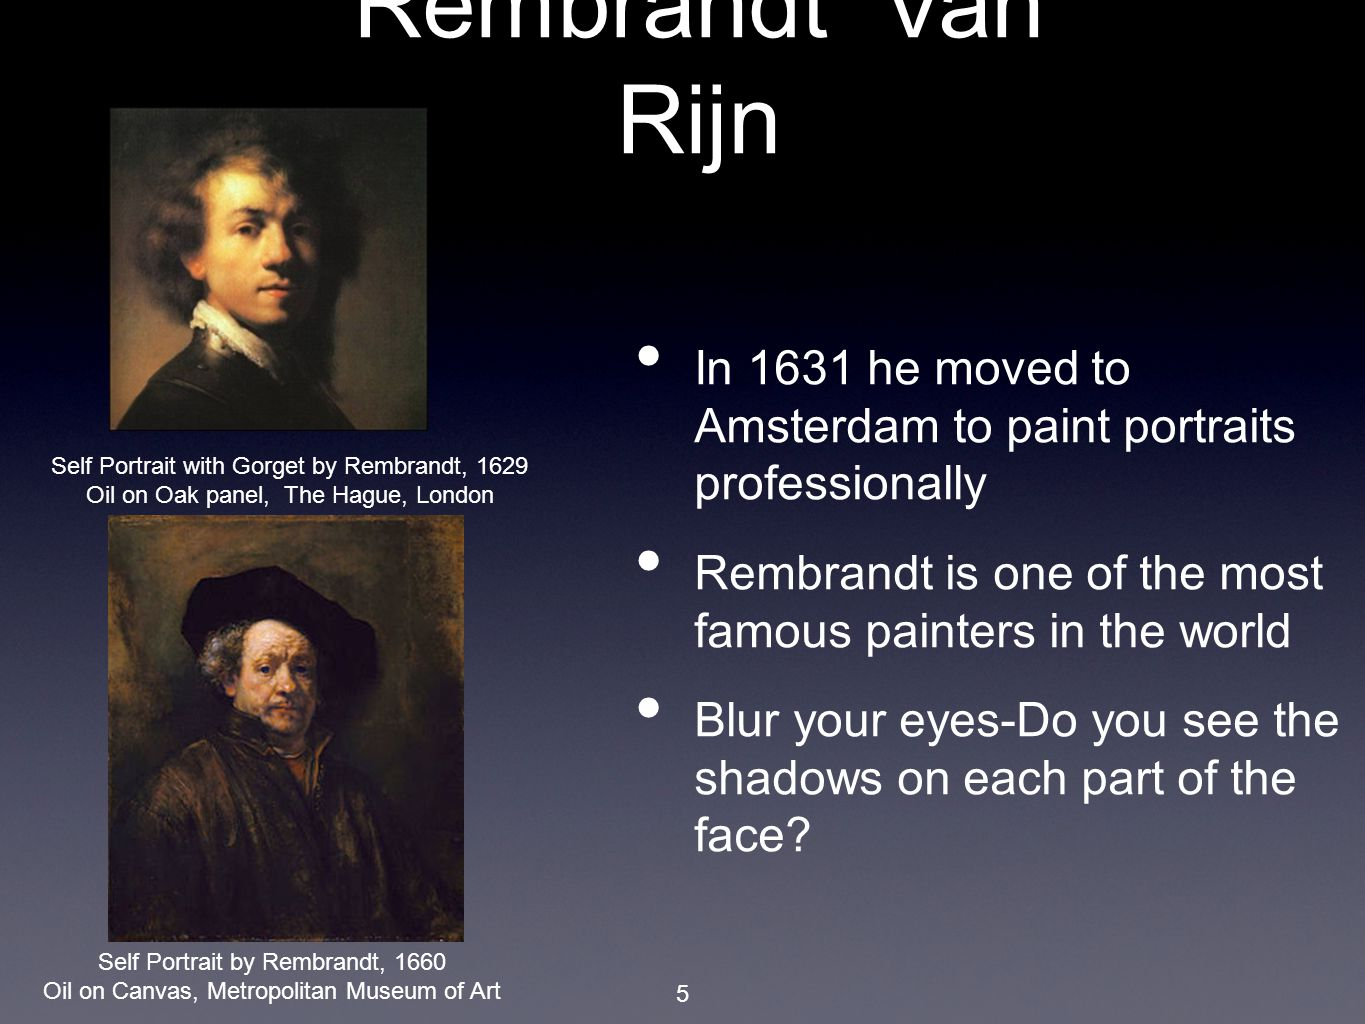 5 In 1631 he moved to Amsterdam to paint portraits professionally Rembrandt is one of the most famous painters in the world Blur your eyes-Do you see the shadows on each part of the face.